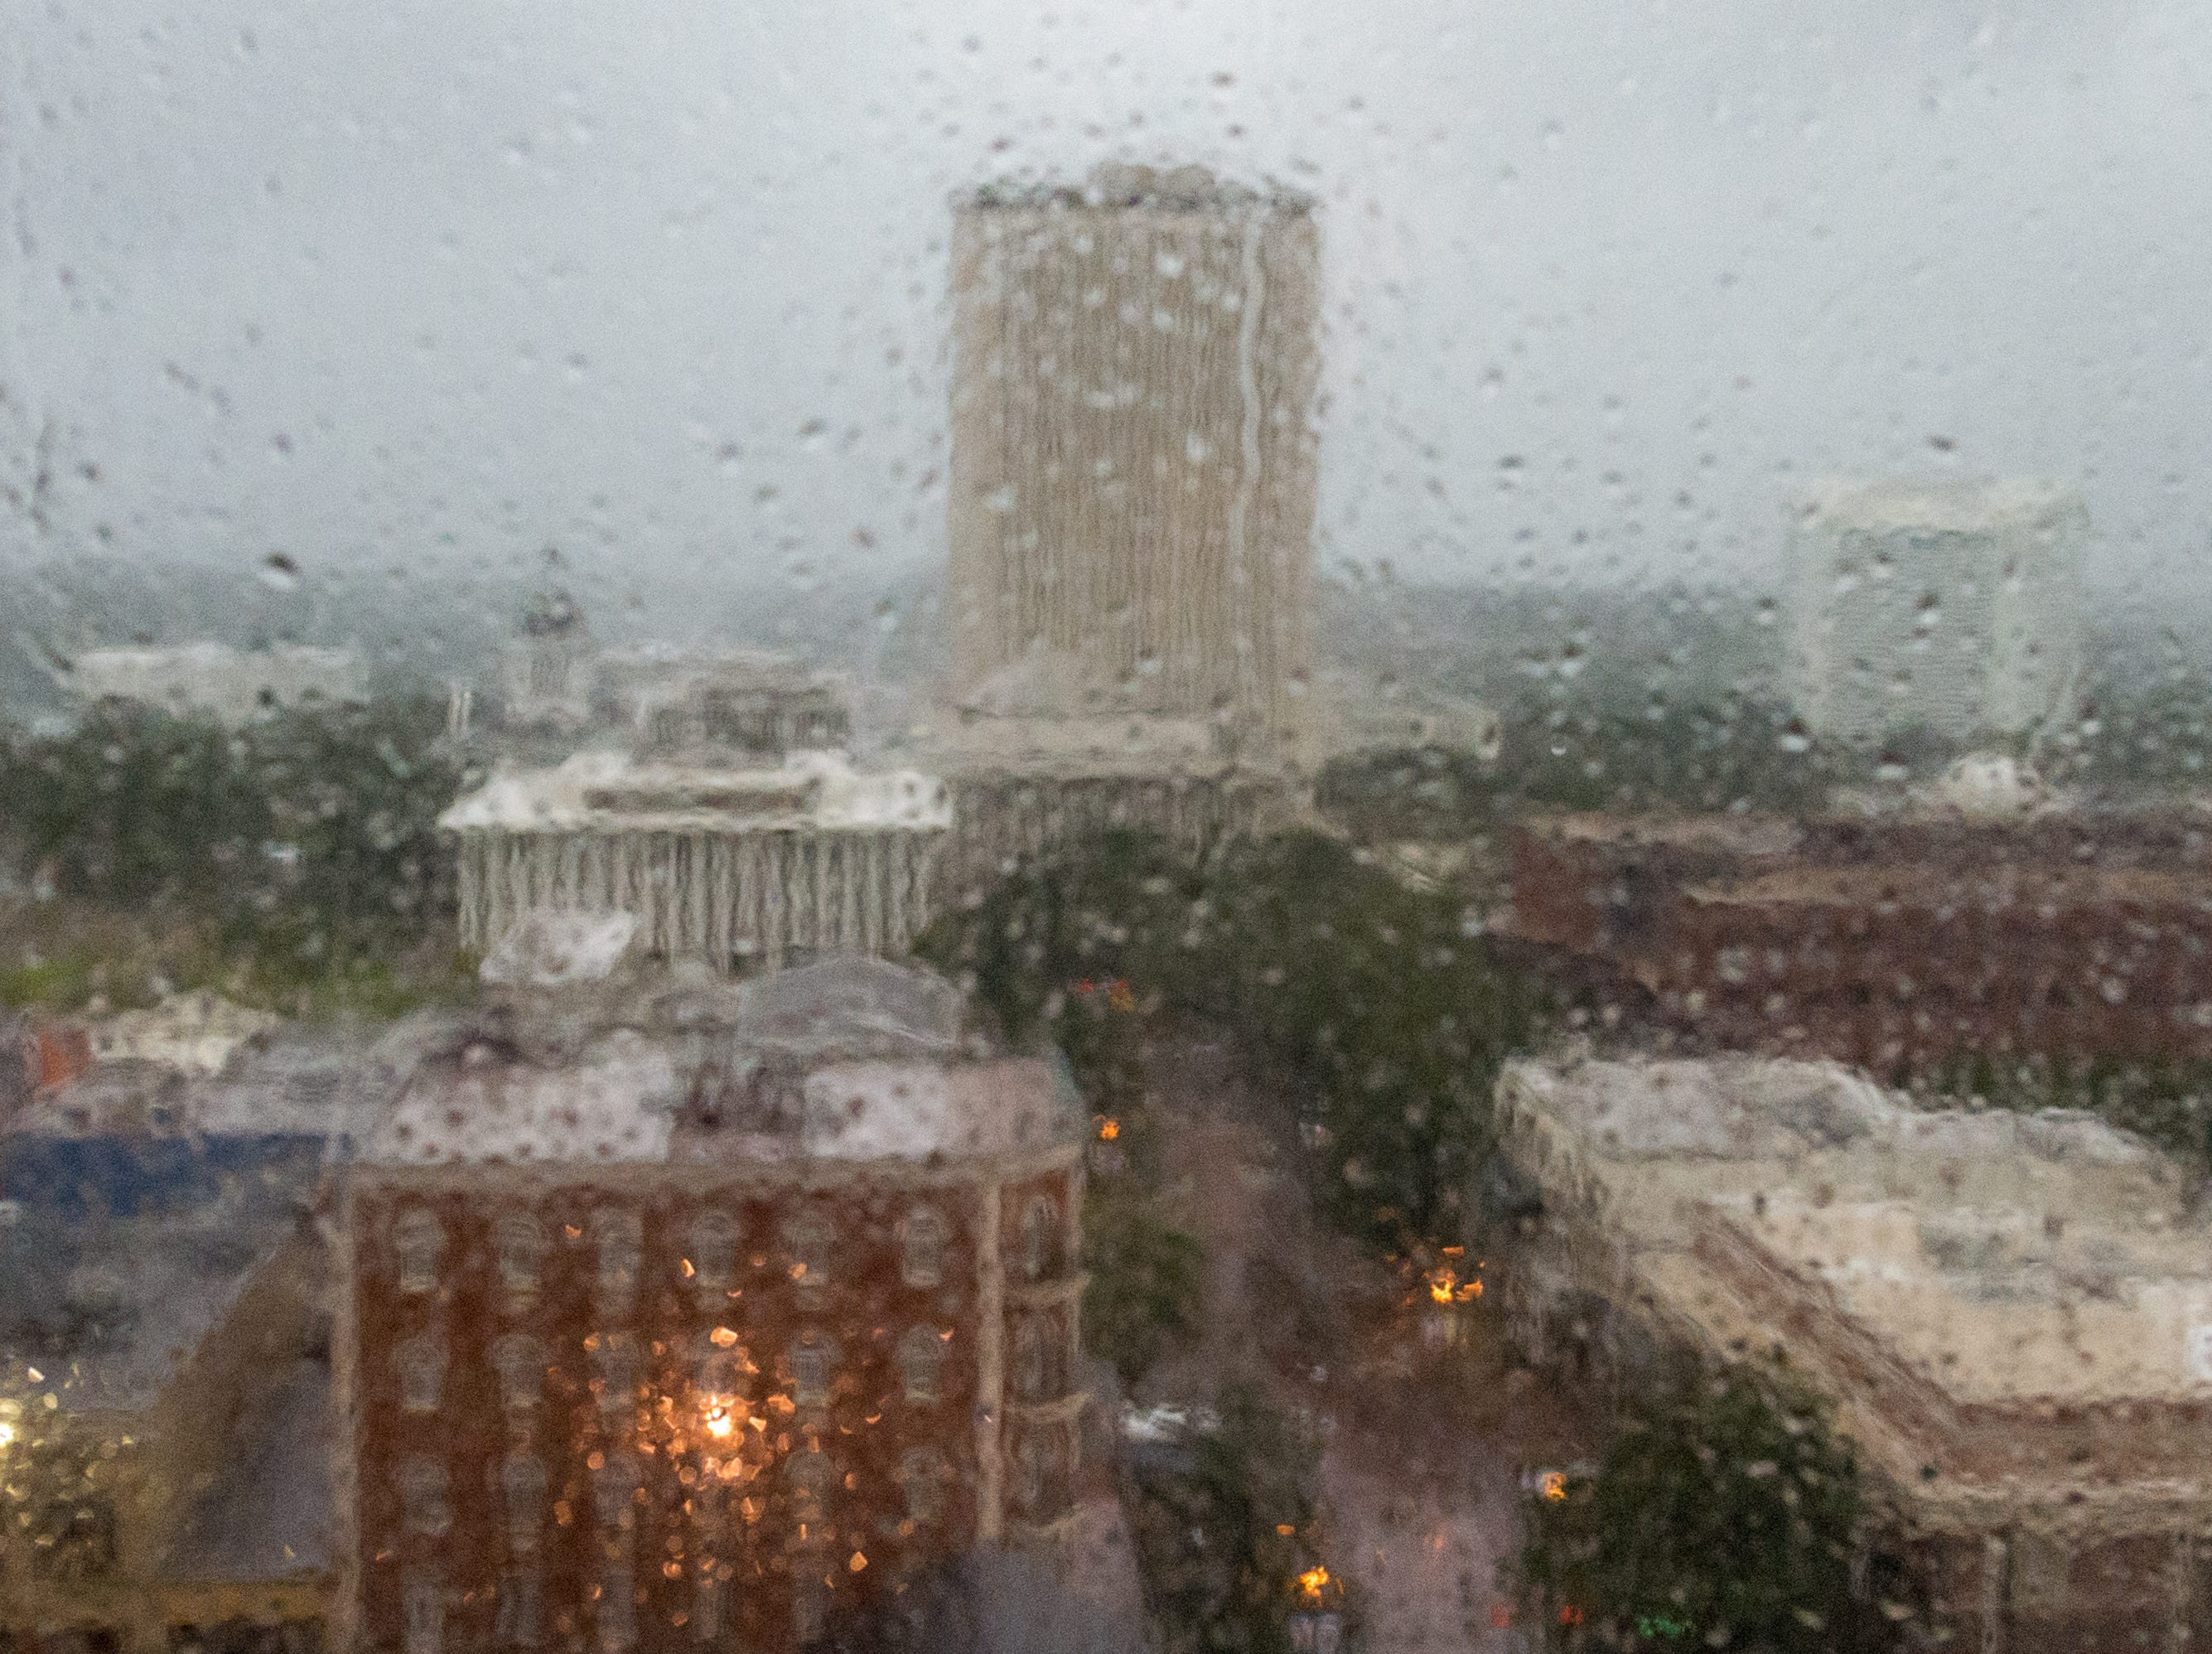 The State Capitol as Hurricane Michael arrives in Tallahassee, FL. Wednesday, Oct. 10, 2018.